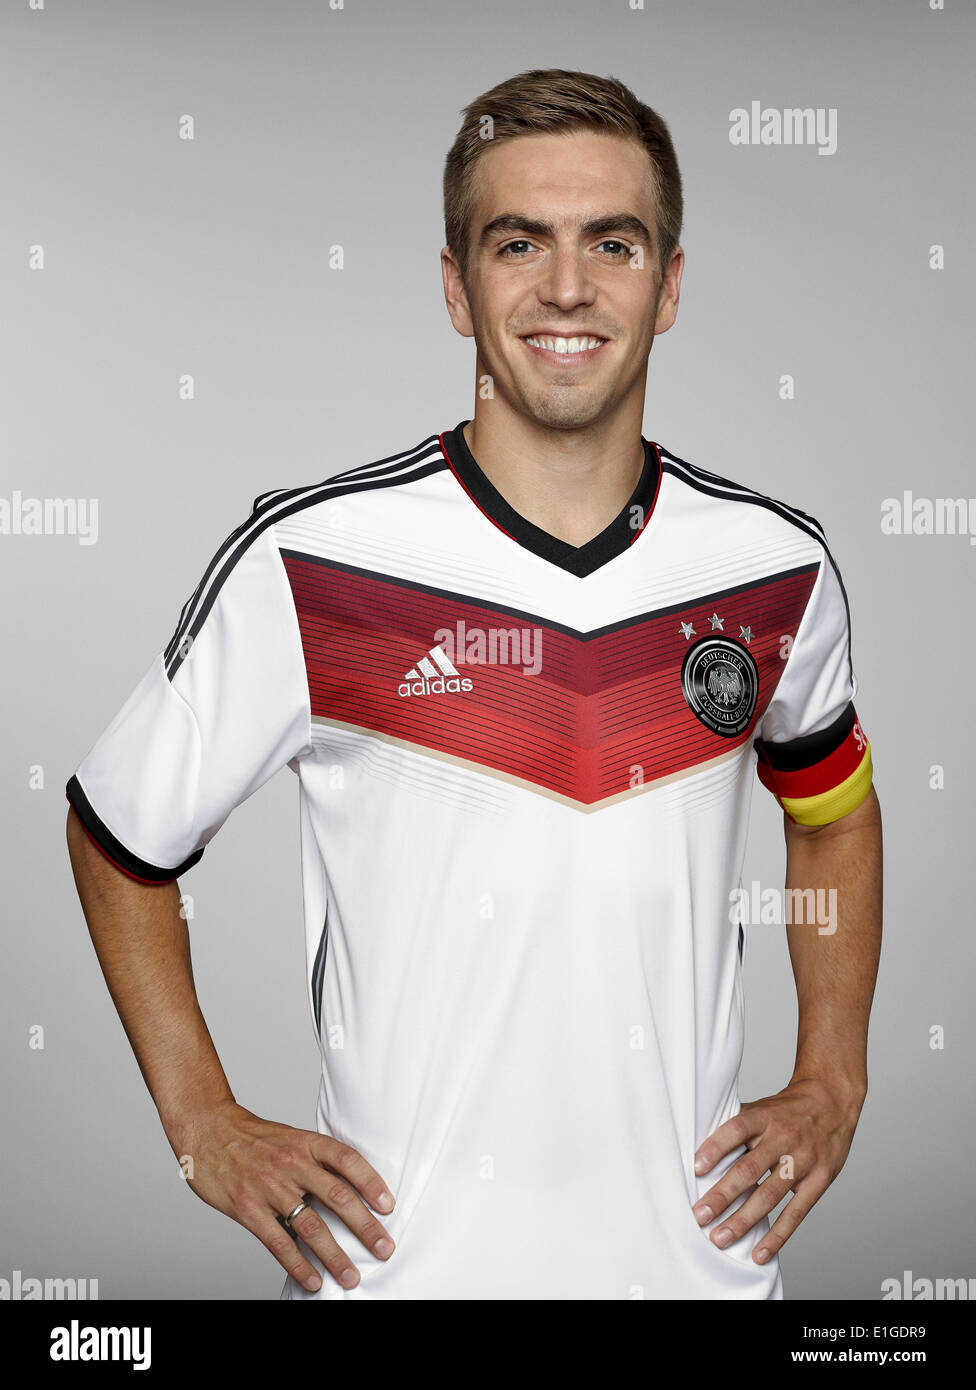 FIFA World Cup 2014 - photocall Team Germany, 24 May 2014 in Passeier, Italy: Philipp Lahm. Photo credit: Bongarts/Getty Images/German Football Association/dpa (editorial use only) - Stock Image